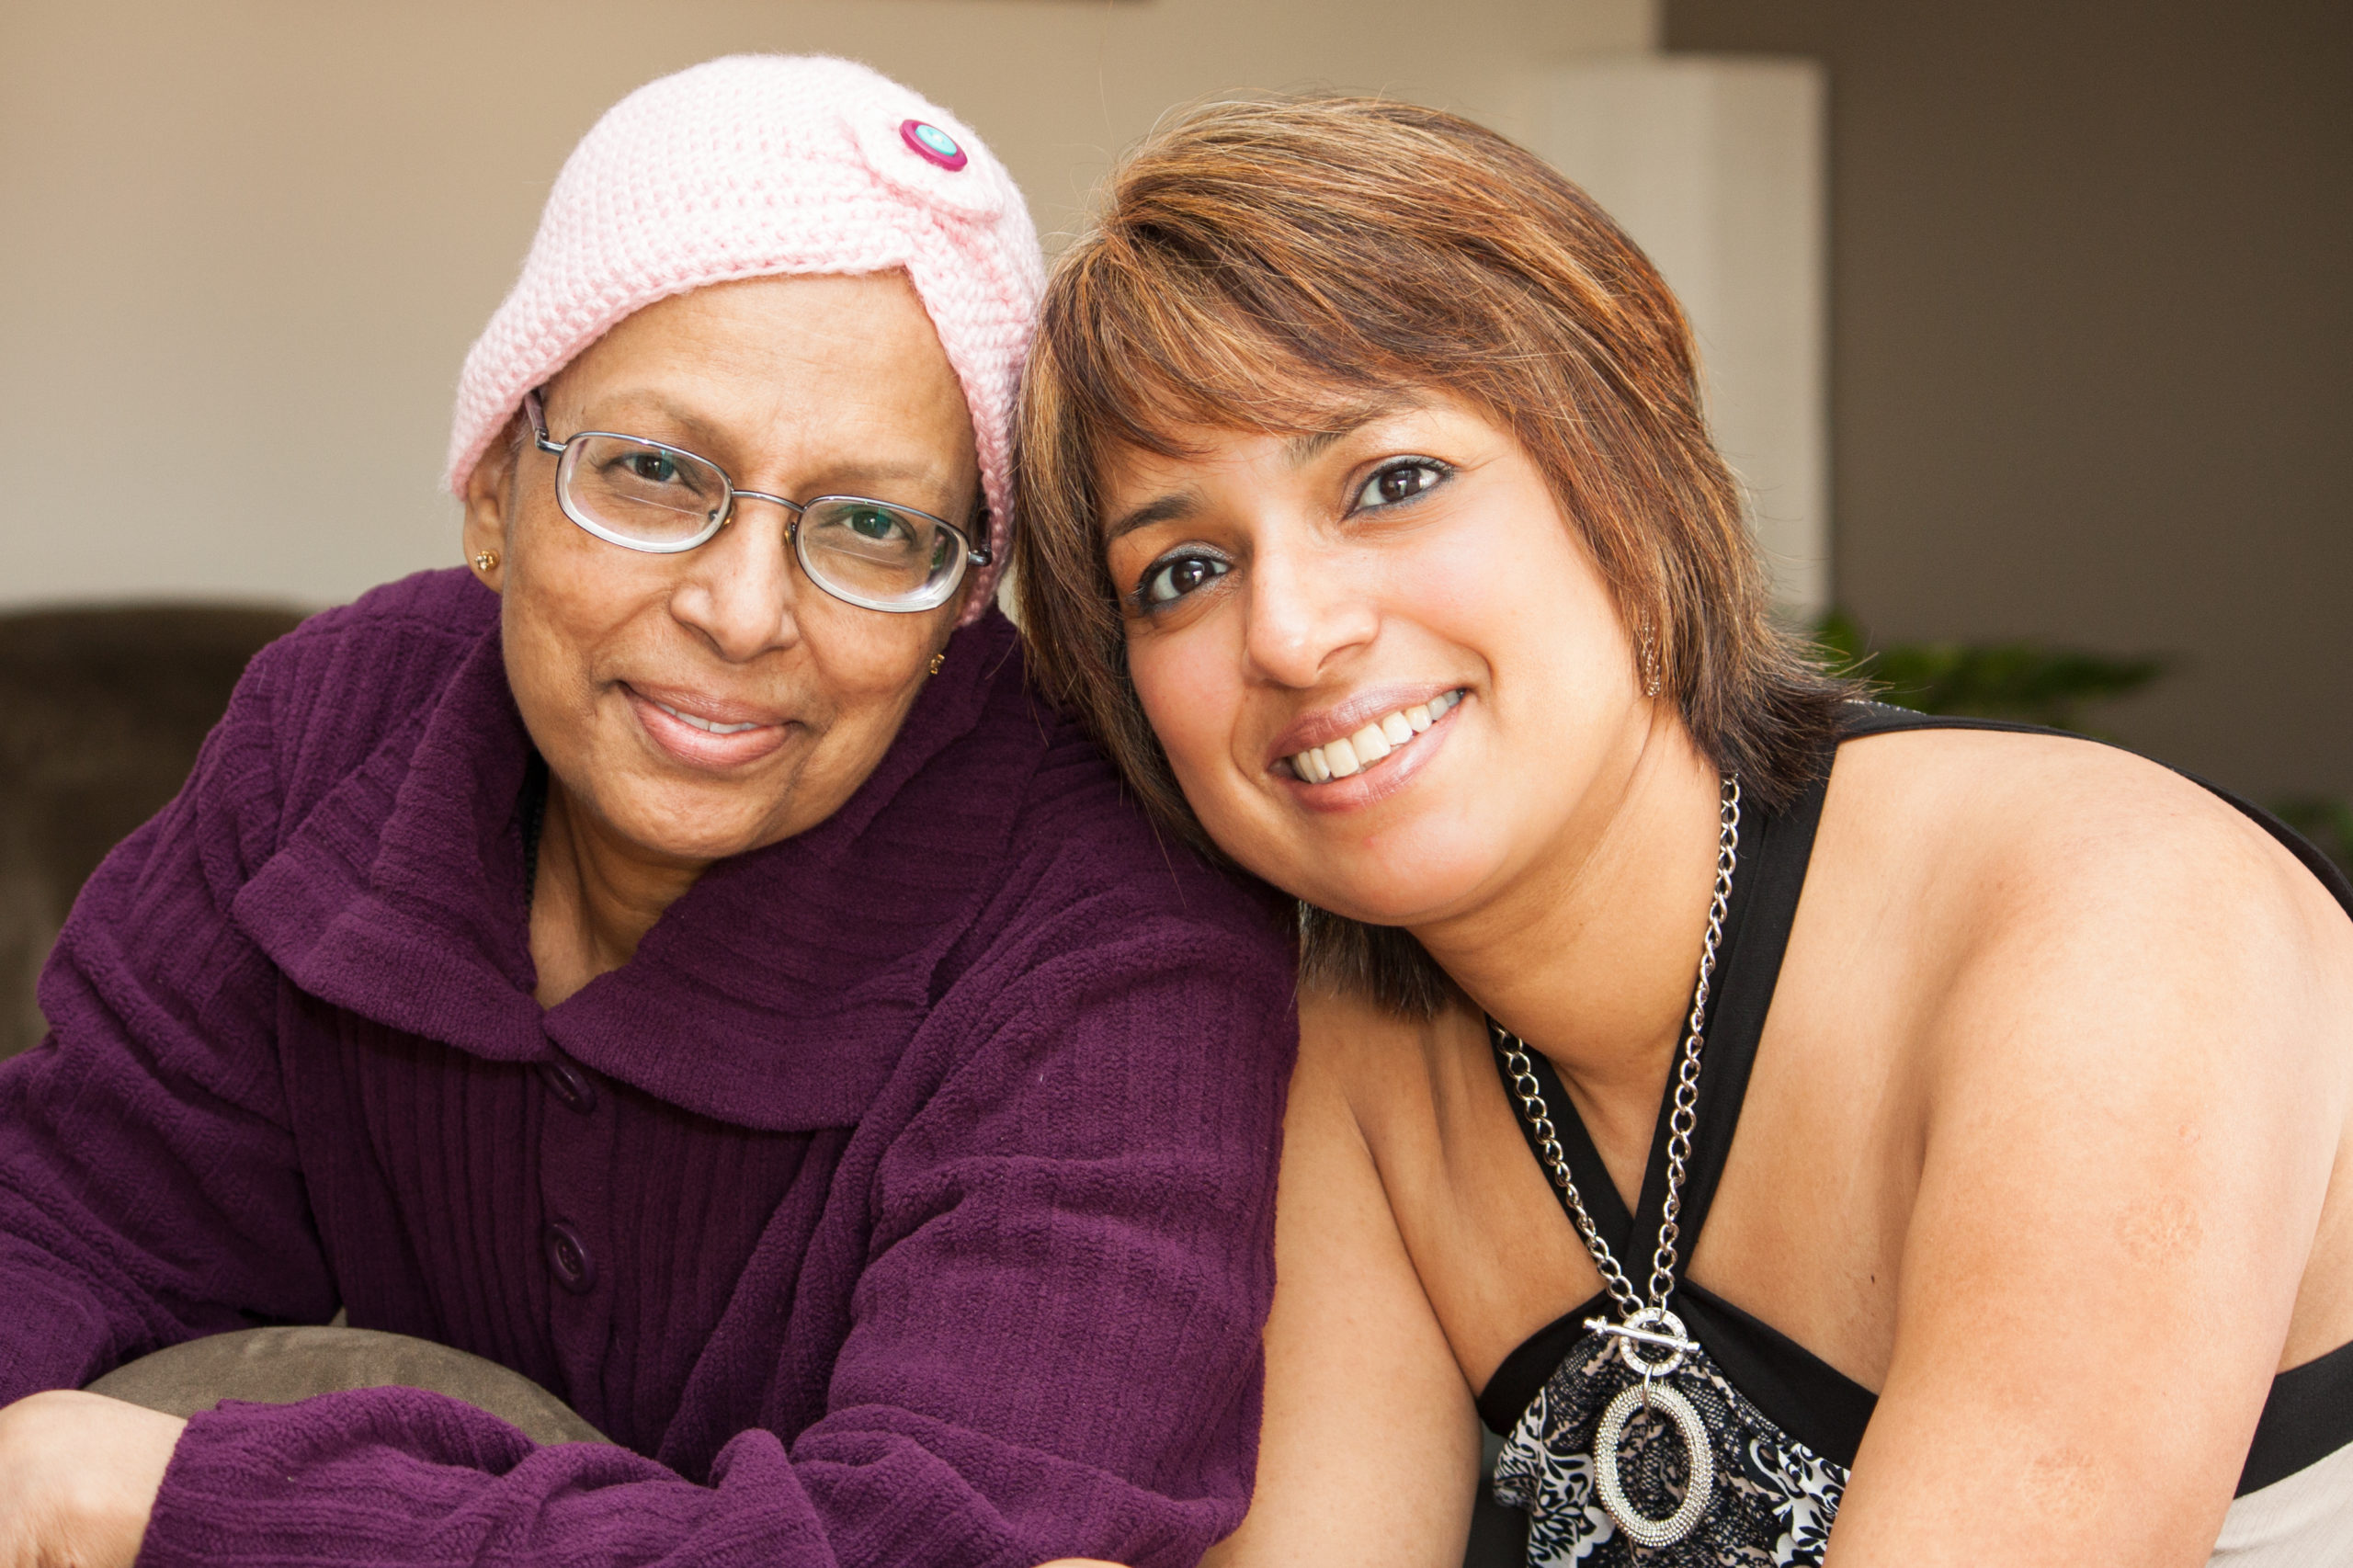 Two women are seated, smiling at a camera. The older of the two is a cancer patient. She is wearing a light pink hat.